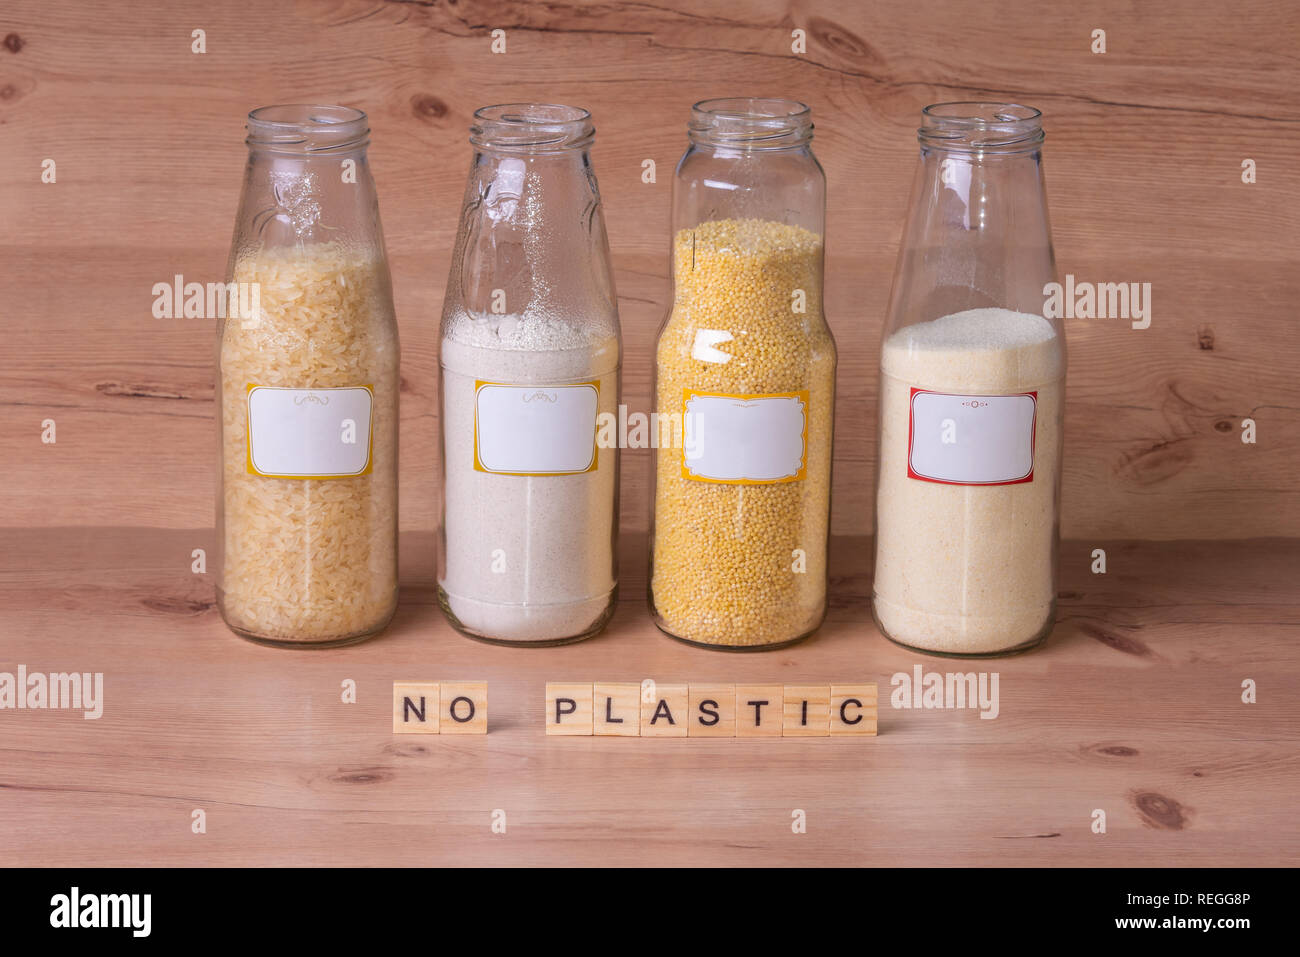 No plastic sign, Four large jars full of food - Stock Image